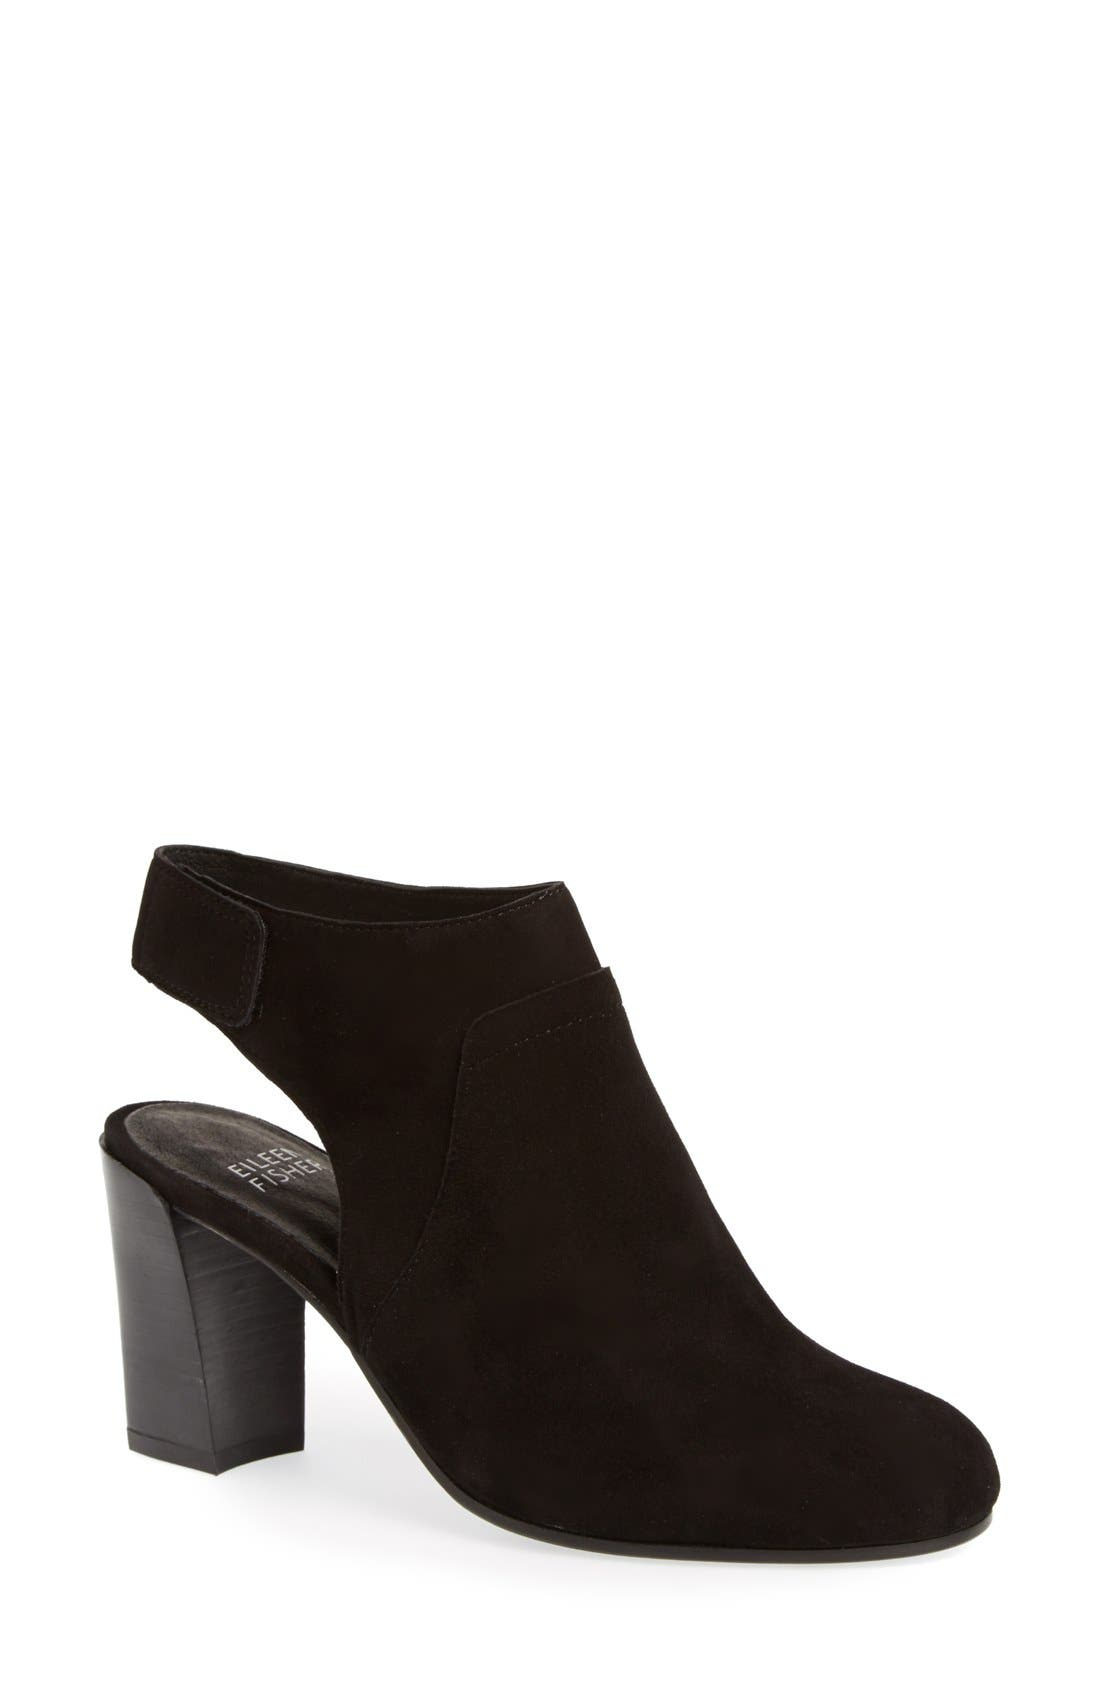 Main Image - Eileen Fisher 'Ideal' Cutout Bootie (Women) (Online Only)